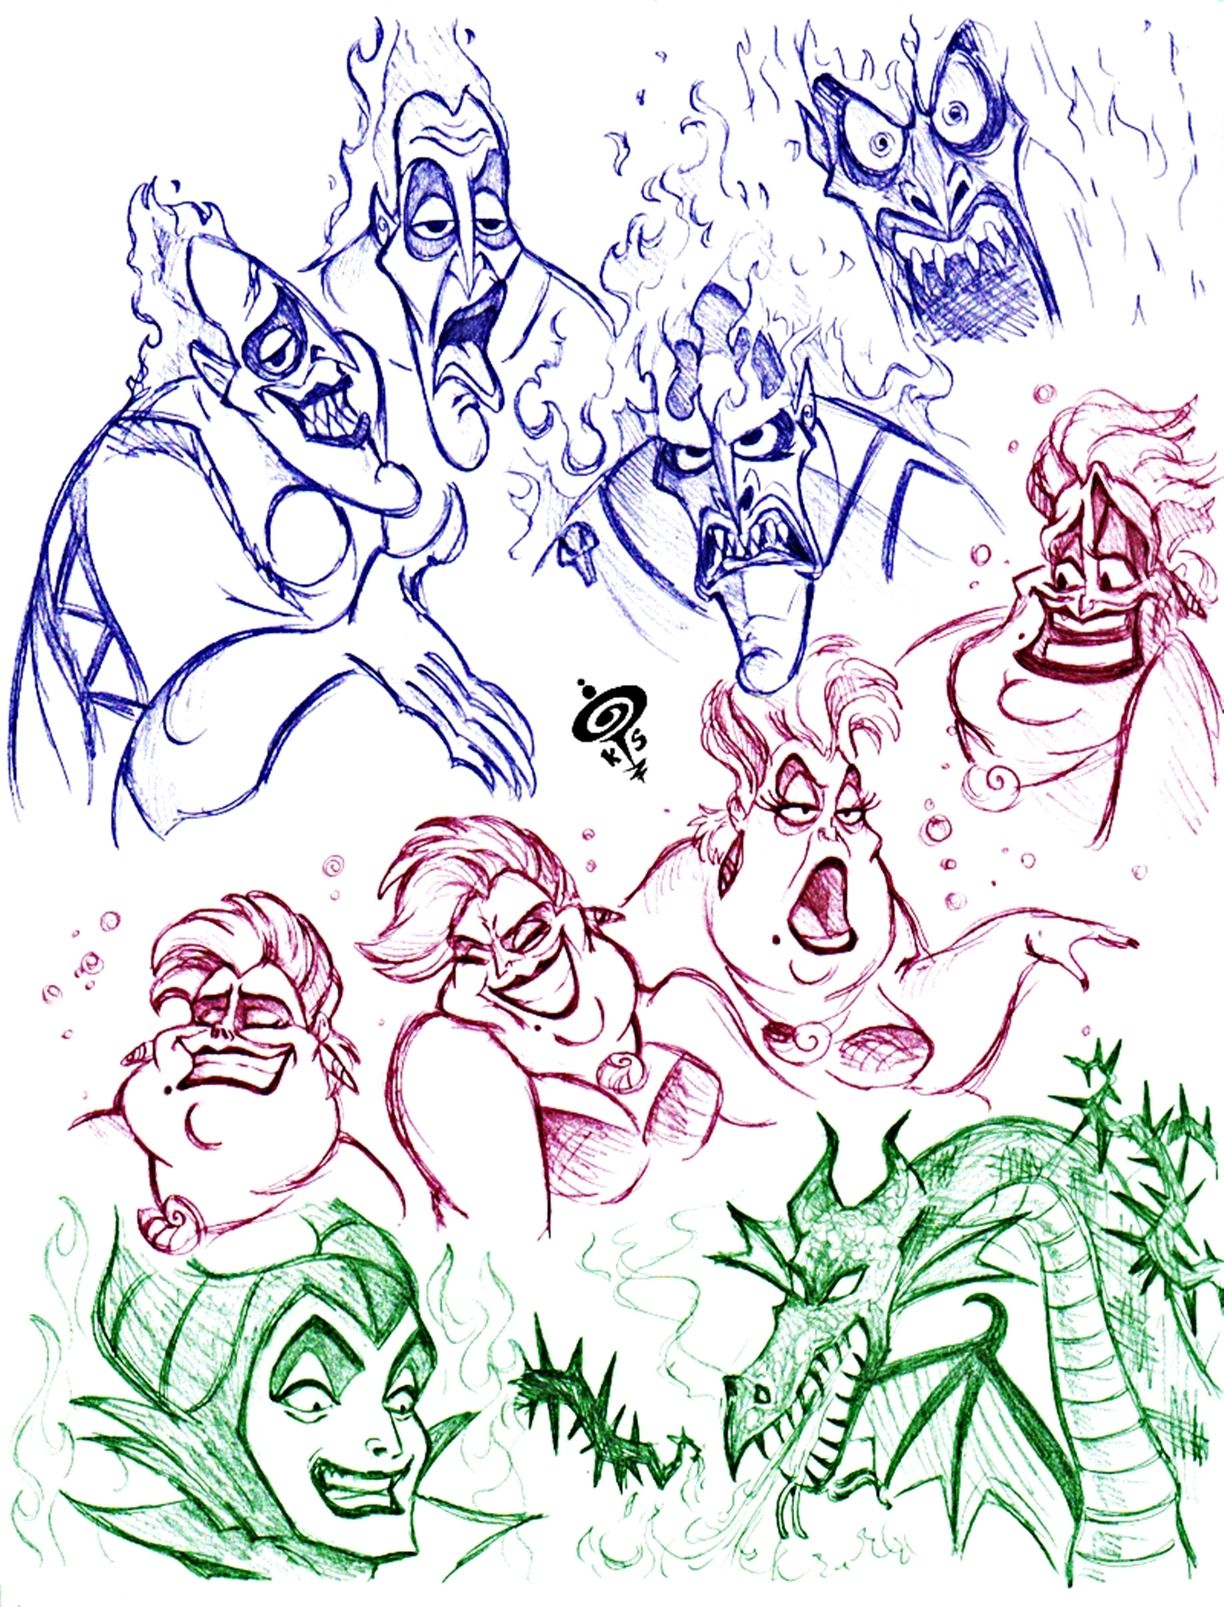 hades u0026 ursula sketches ursula tattoo pinterest ursula and